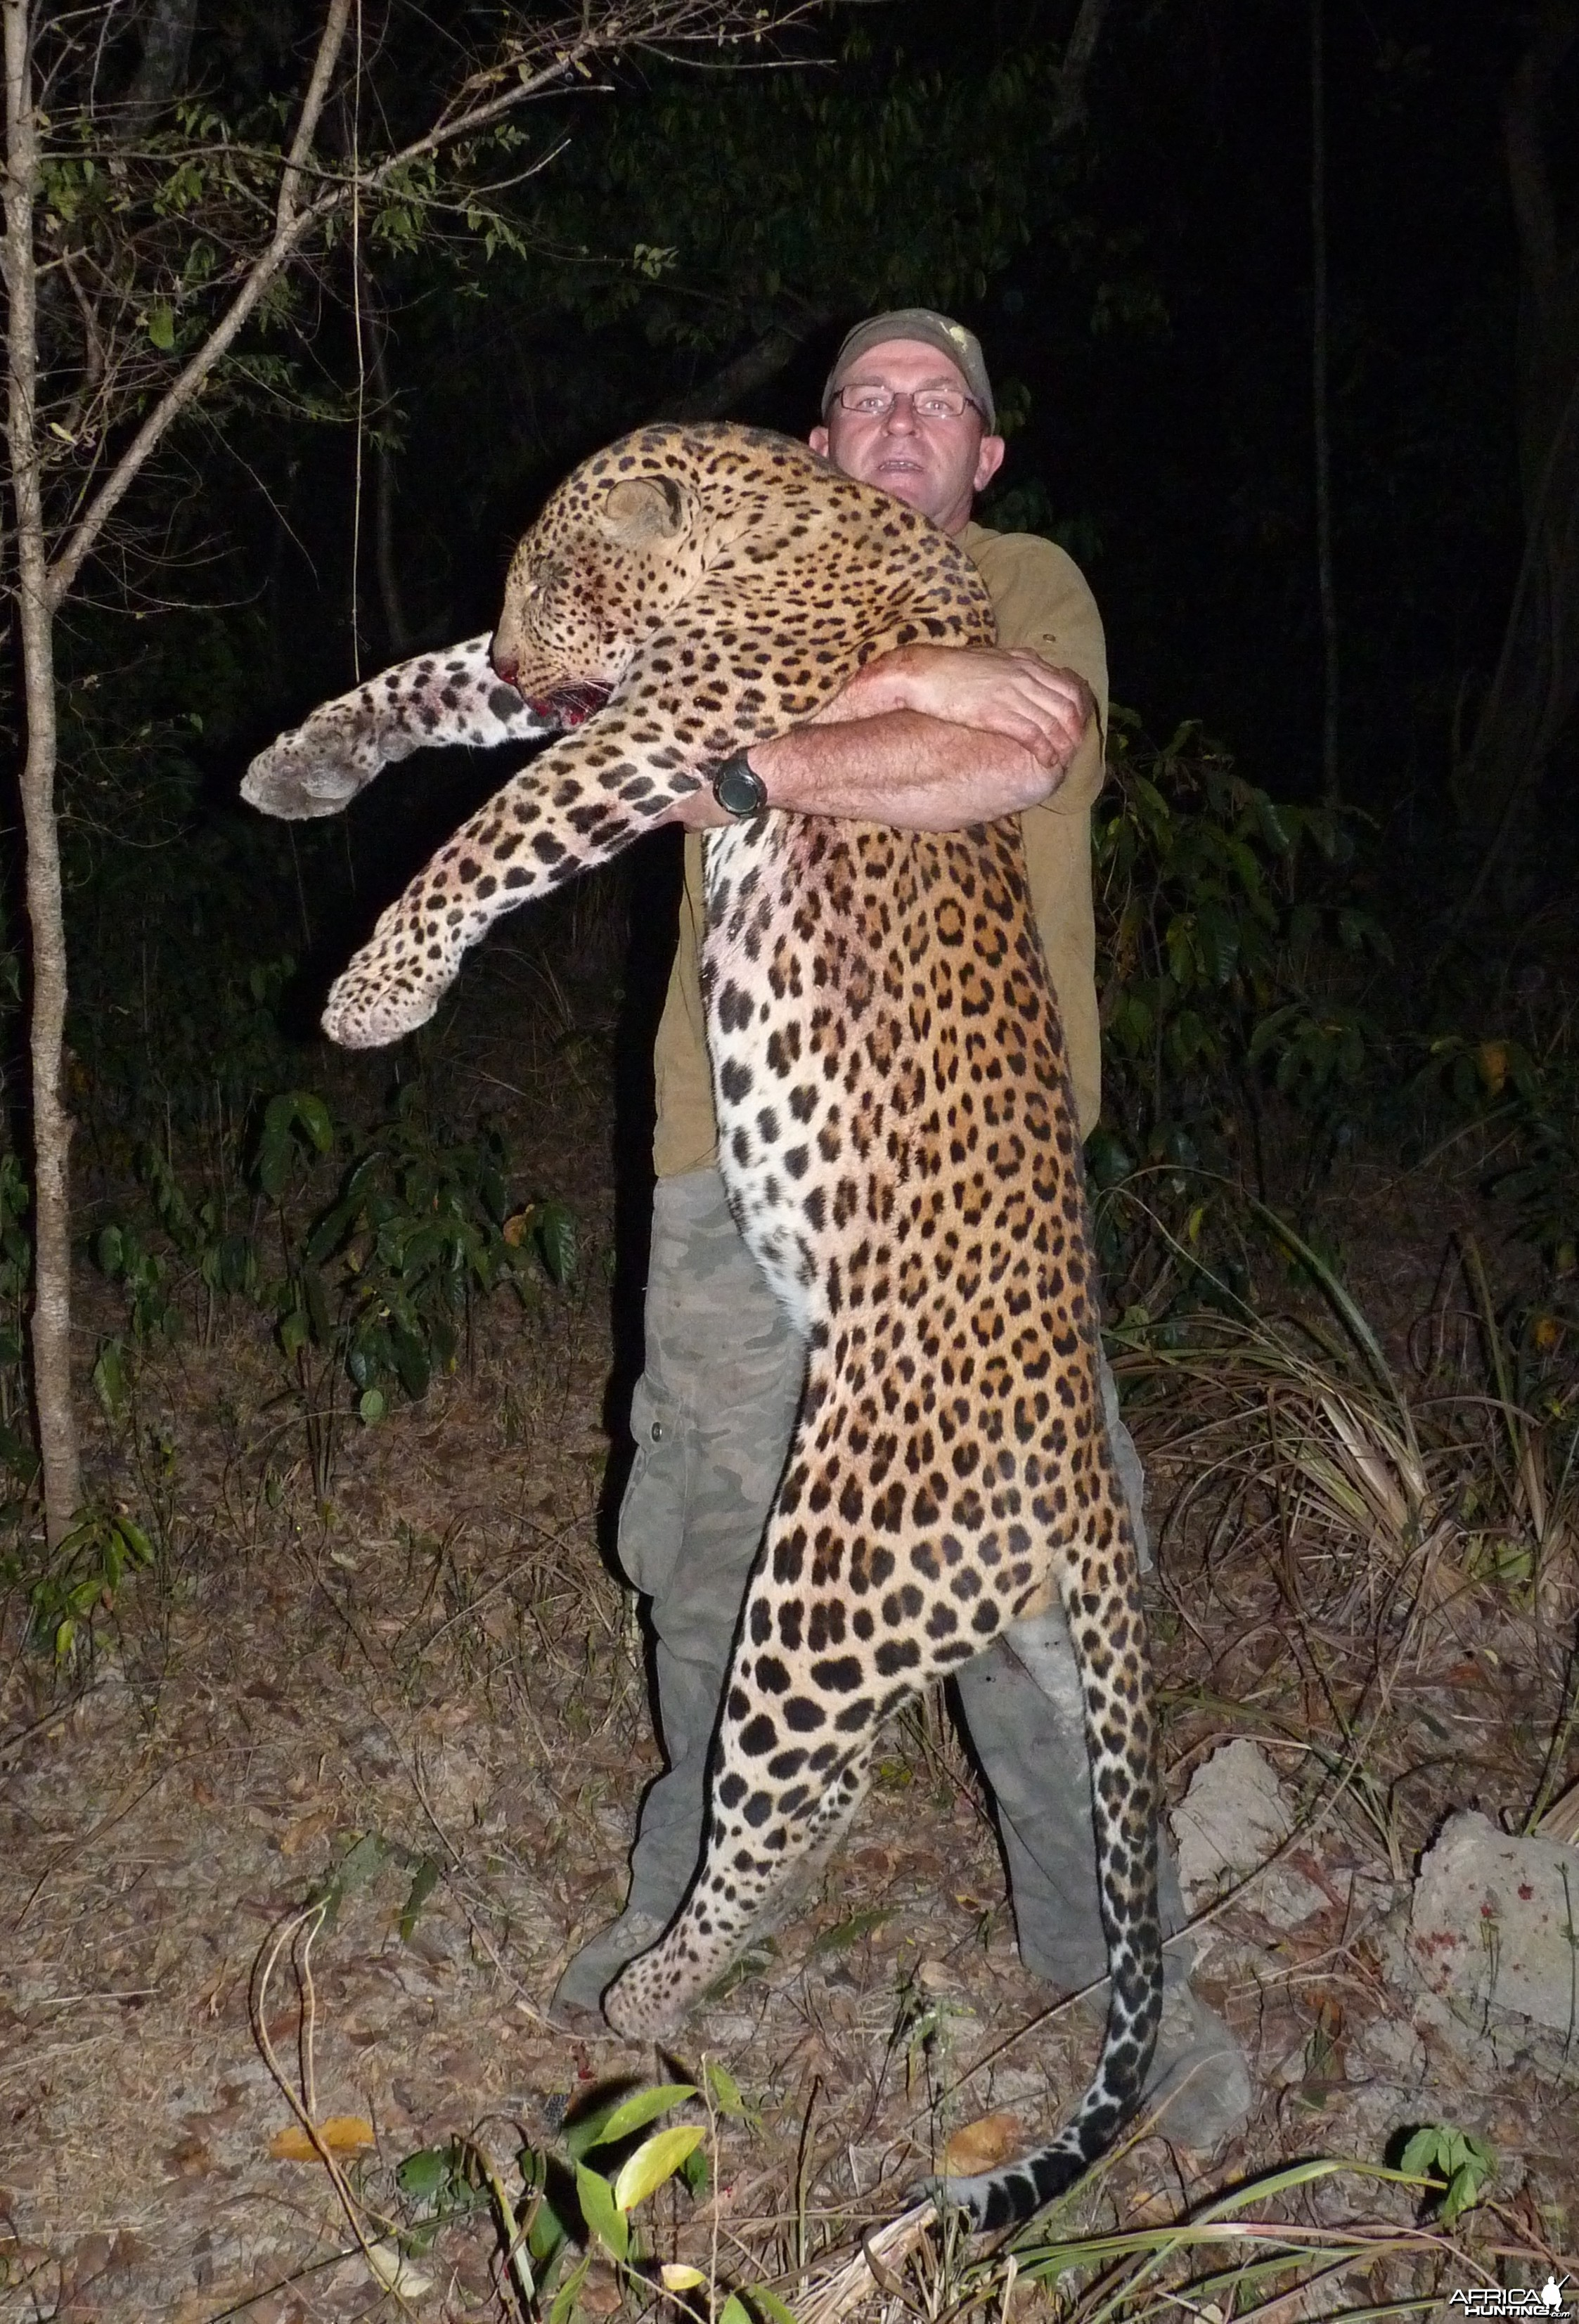 Leopard hunted in Central African Republic